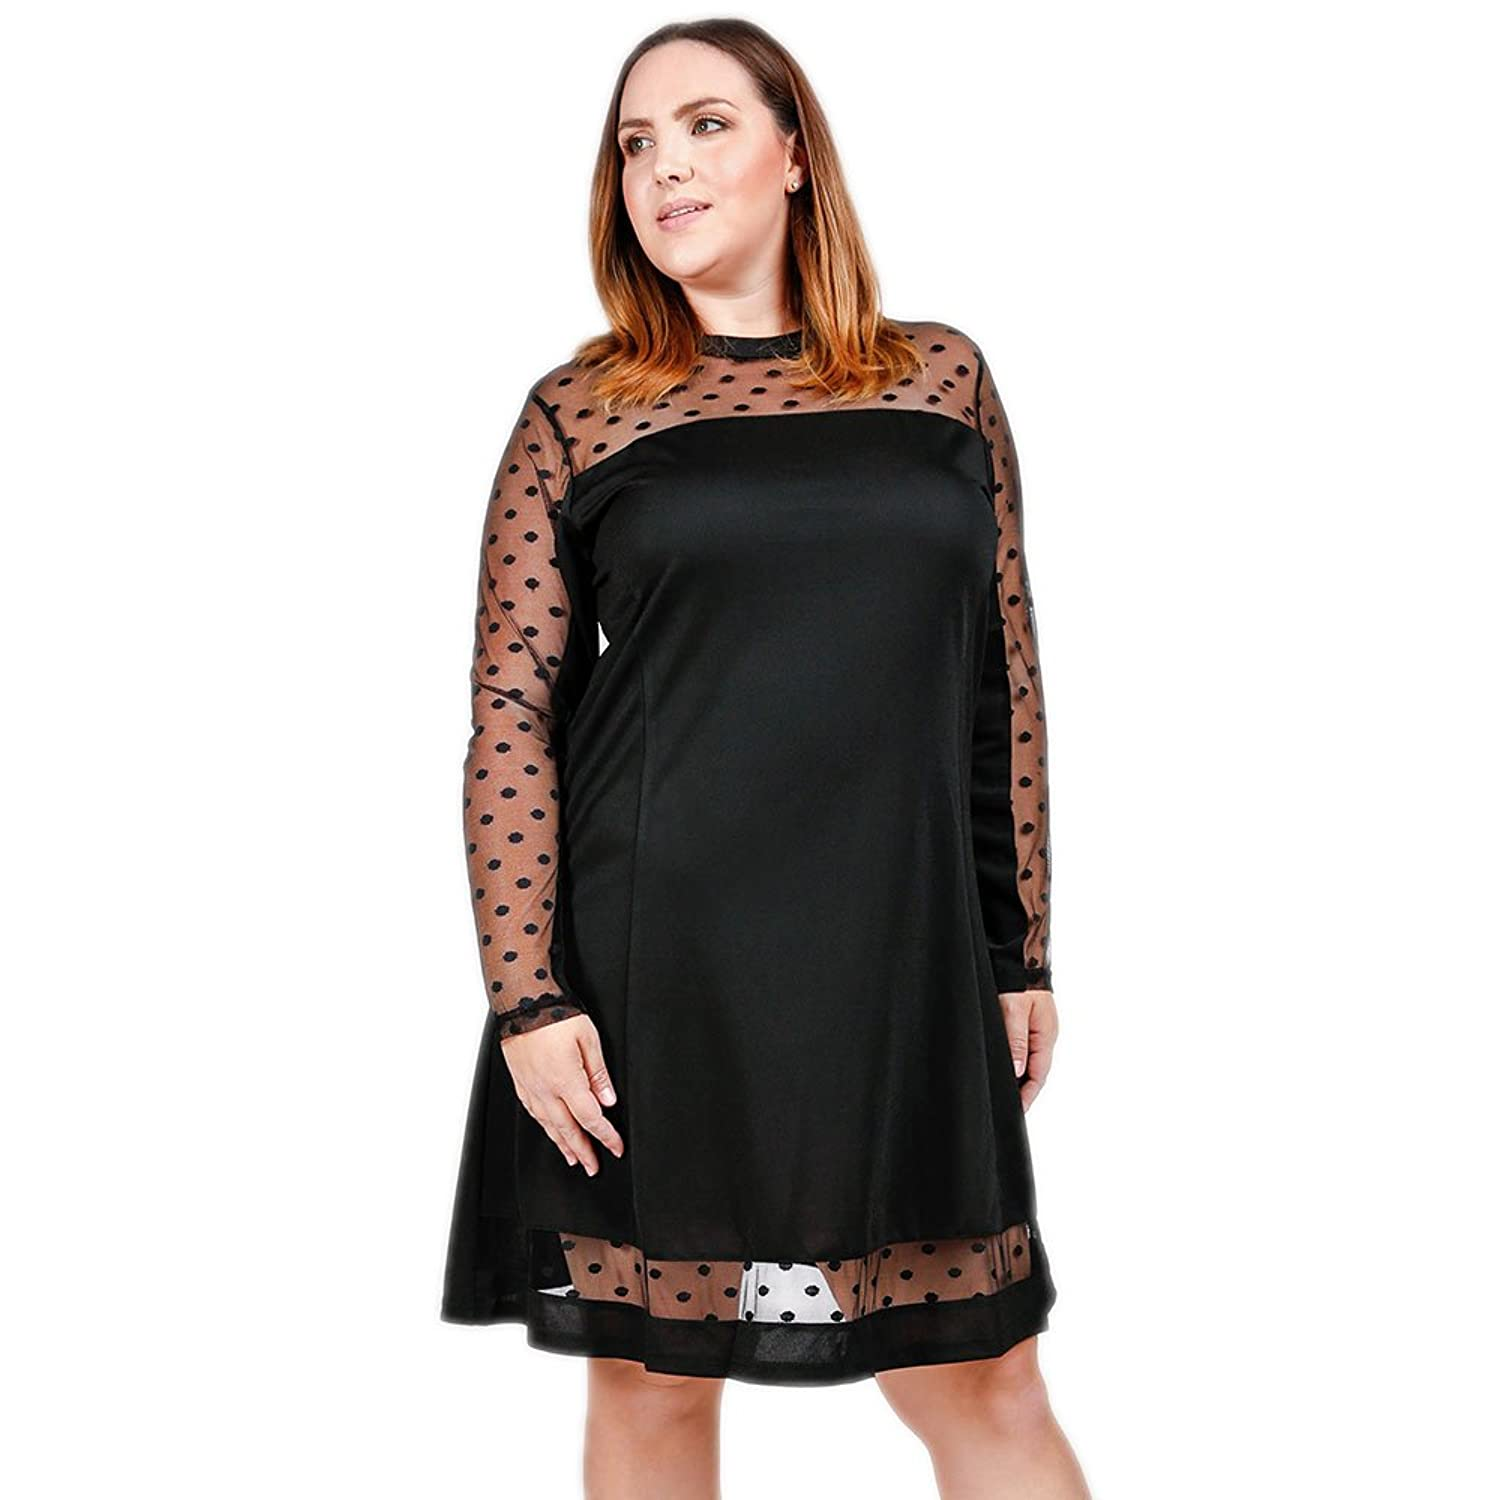 541903bd09a The Classic Black Dress  This cocktail dress with mesh polka dot detailing  creates a flirty version of the vintage dresses plus size women love